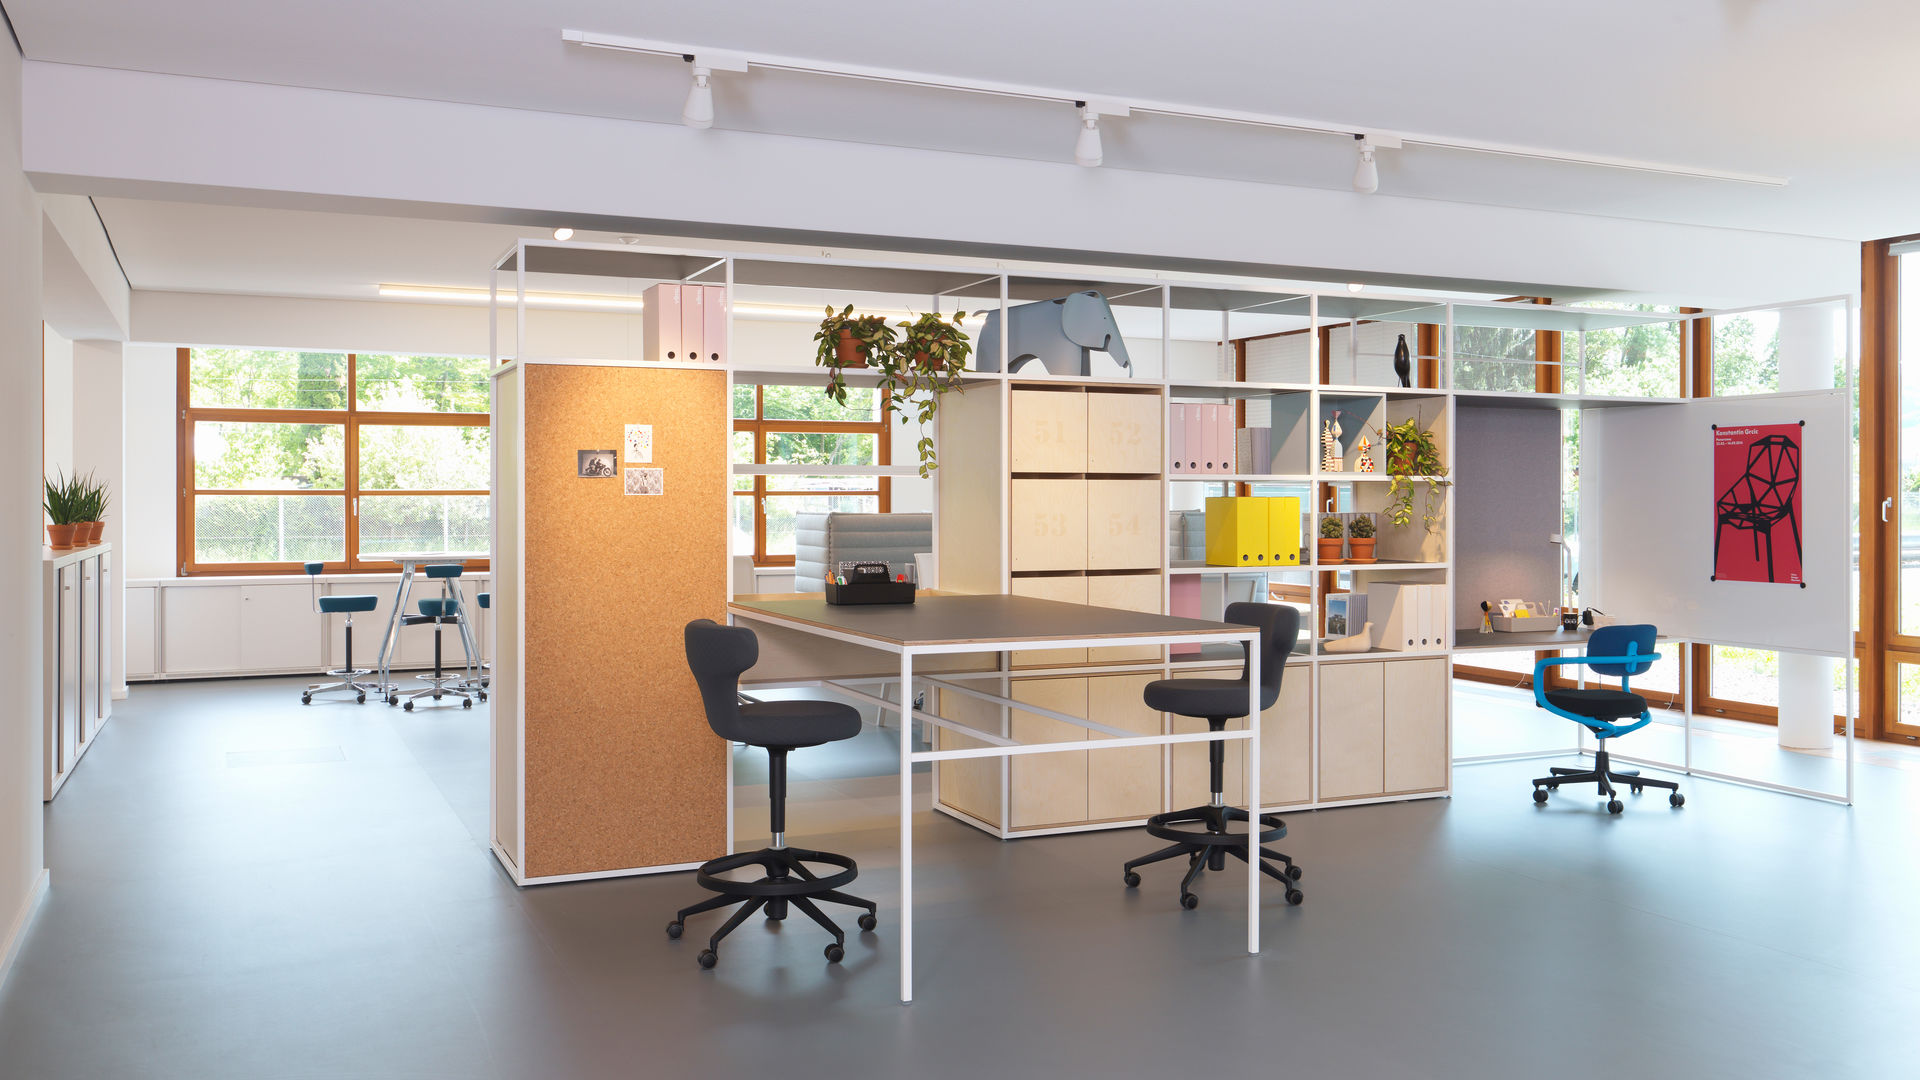 Studio Office, Vitra, Birsfelden (Switzerland) (2)version_web_reference